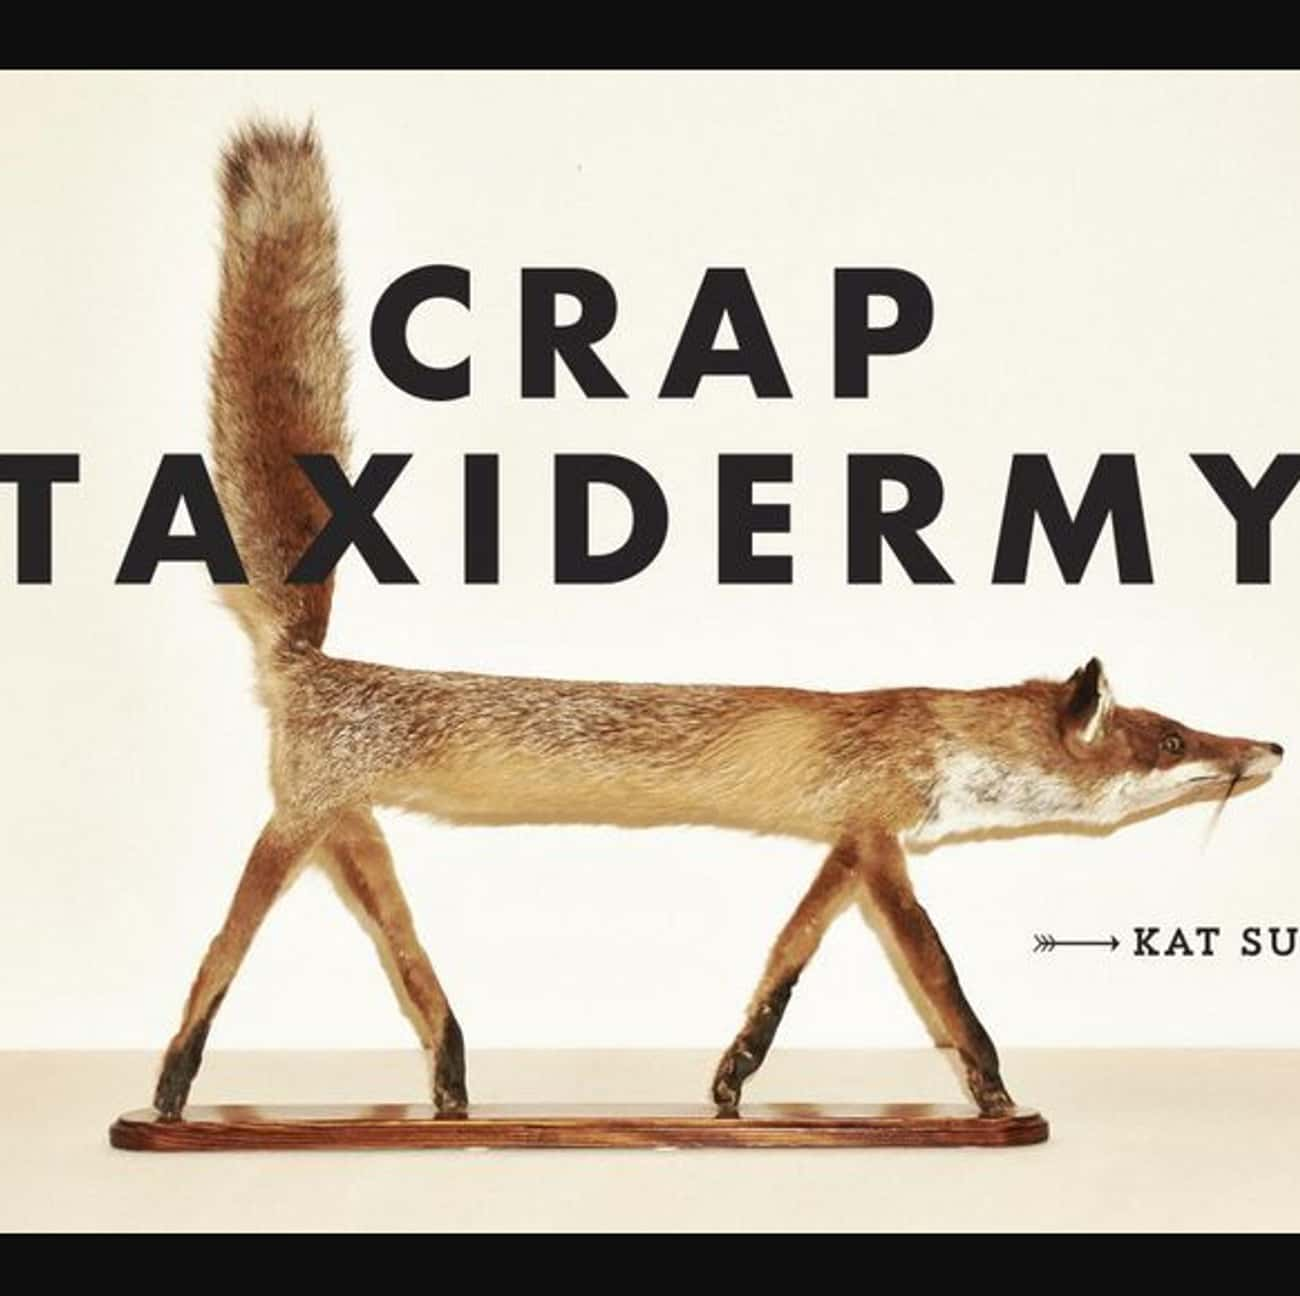 Crap Taxidermy is listed (or ranked) 3 on the list The Funniest Coffee Table Books Money Can Buy